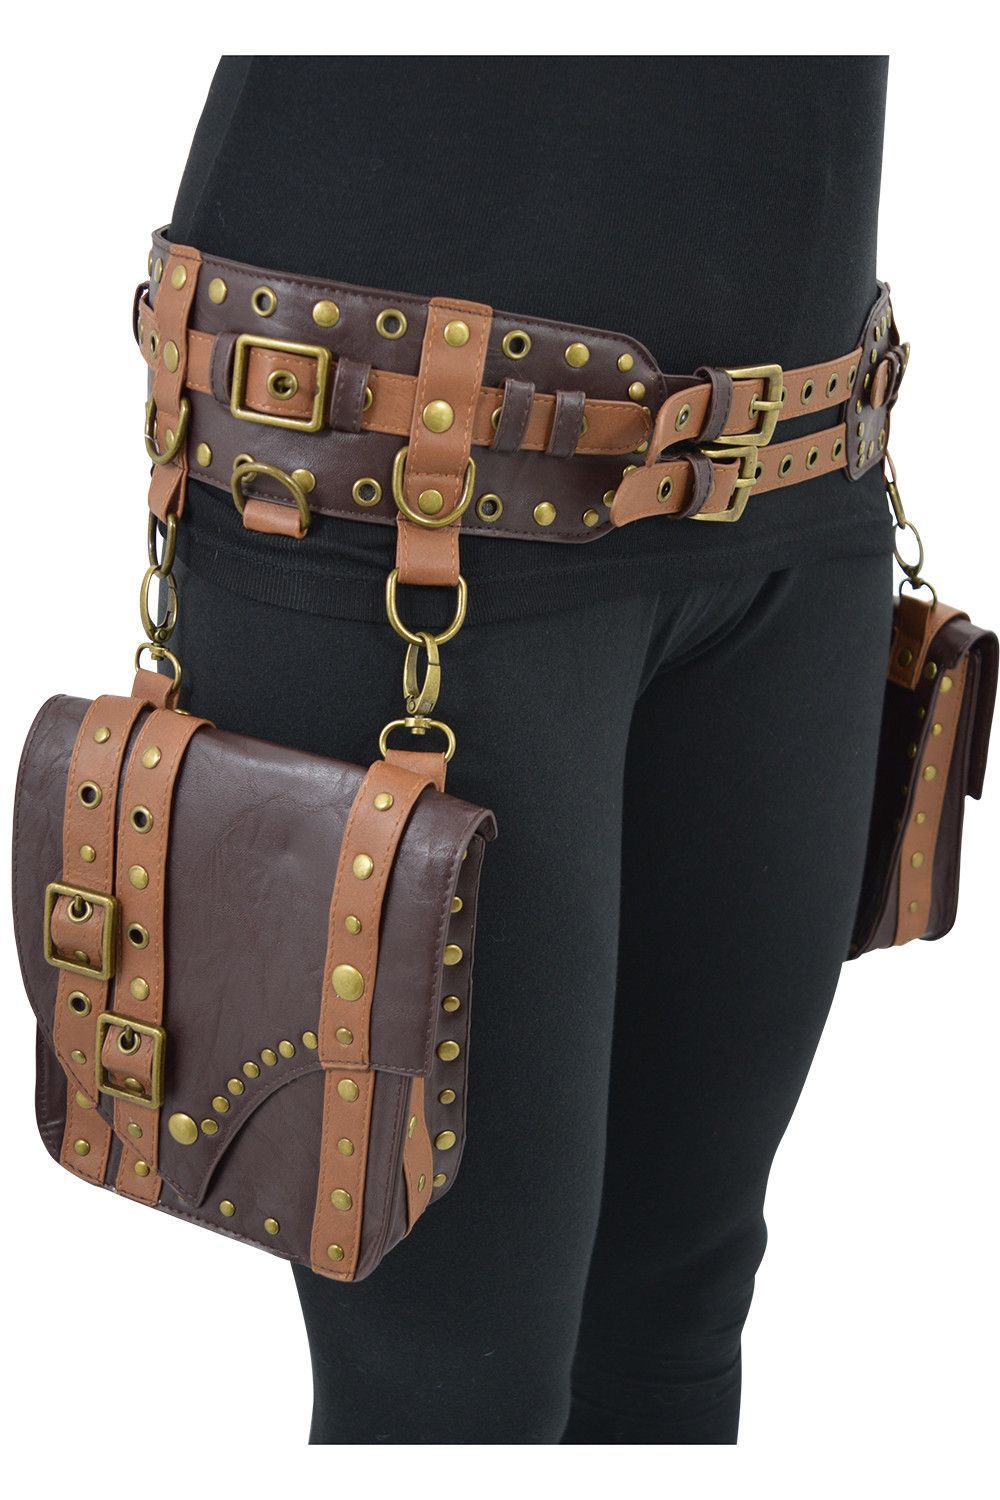 restyle western steampunk hip saddle bags double buckle wide